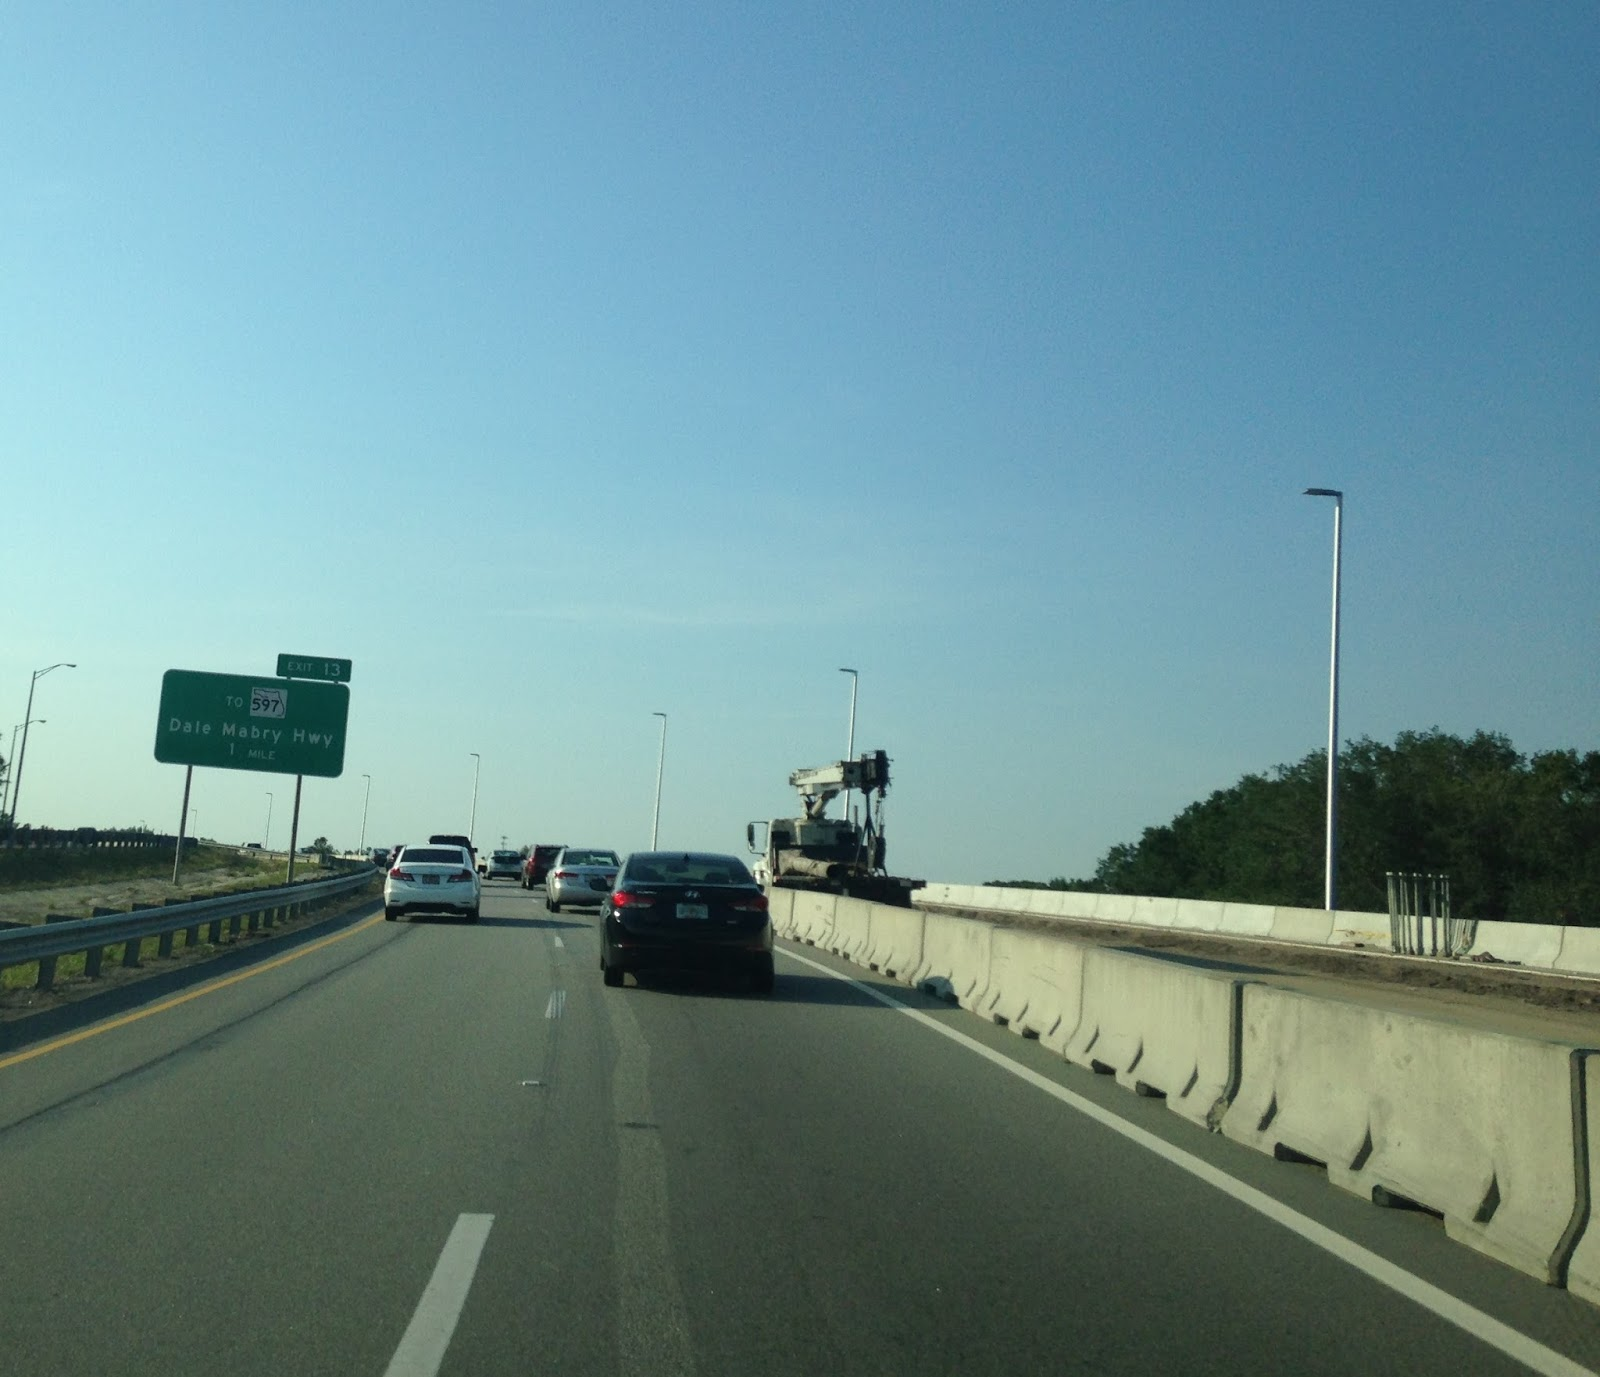 exit 13 is actually part of the former alignment of the veterans expressway known as fl 568 when the veterans expressway was completed in 1994 it utilized